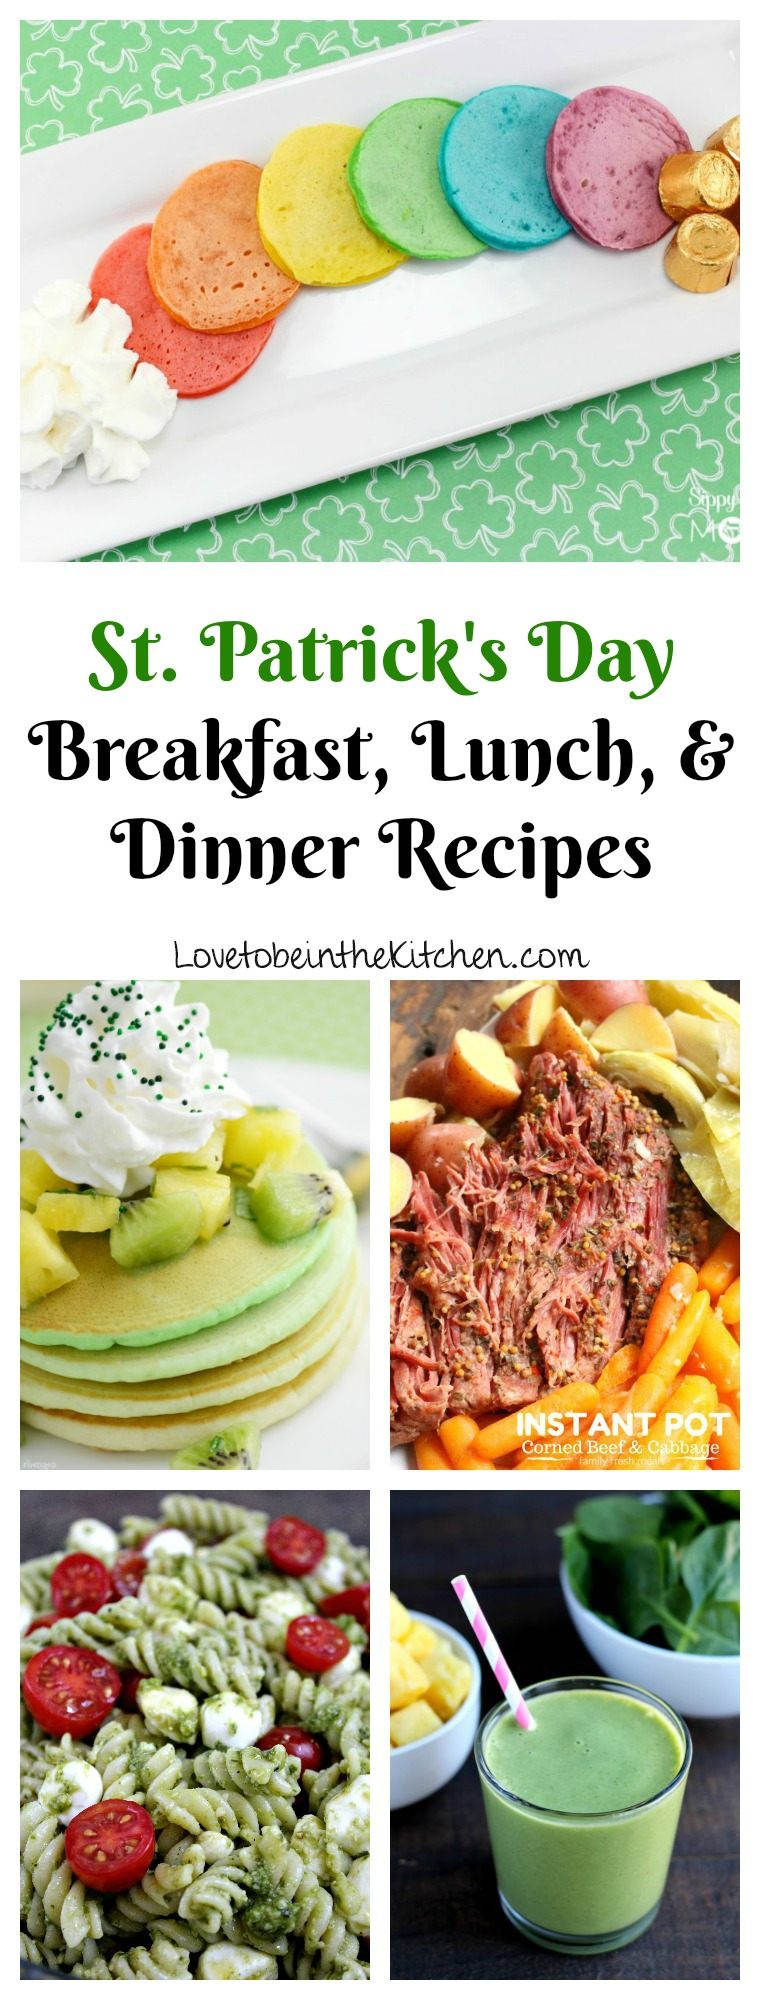 St patricks day breakfast lunch and dinner recipes love to be st patricks day breakfast lunch dinner recipes forumfinder Gallery